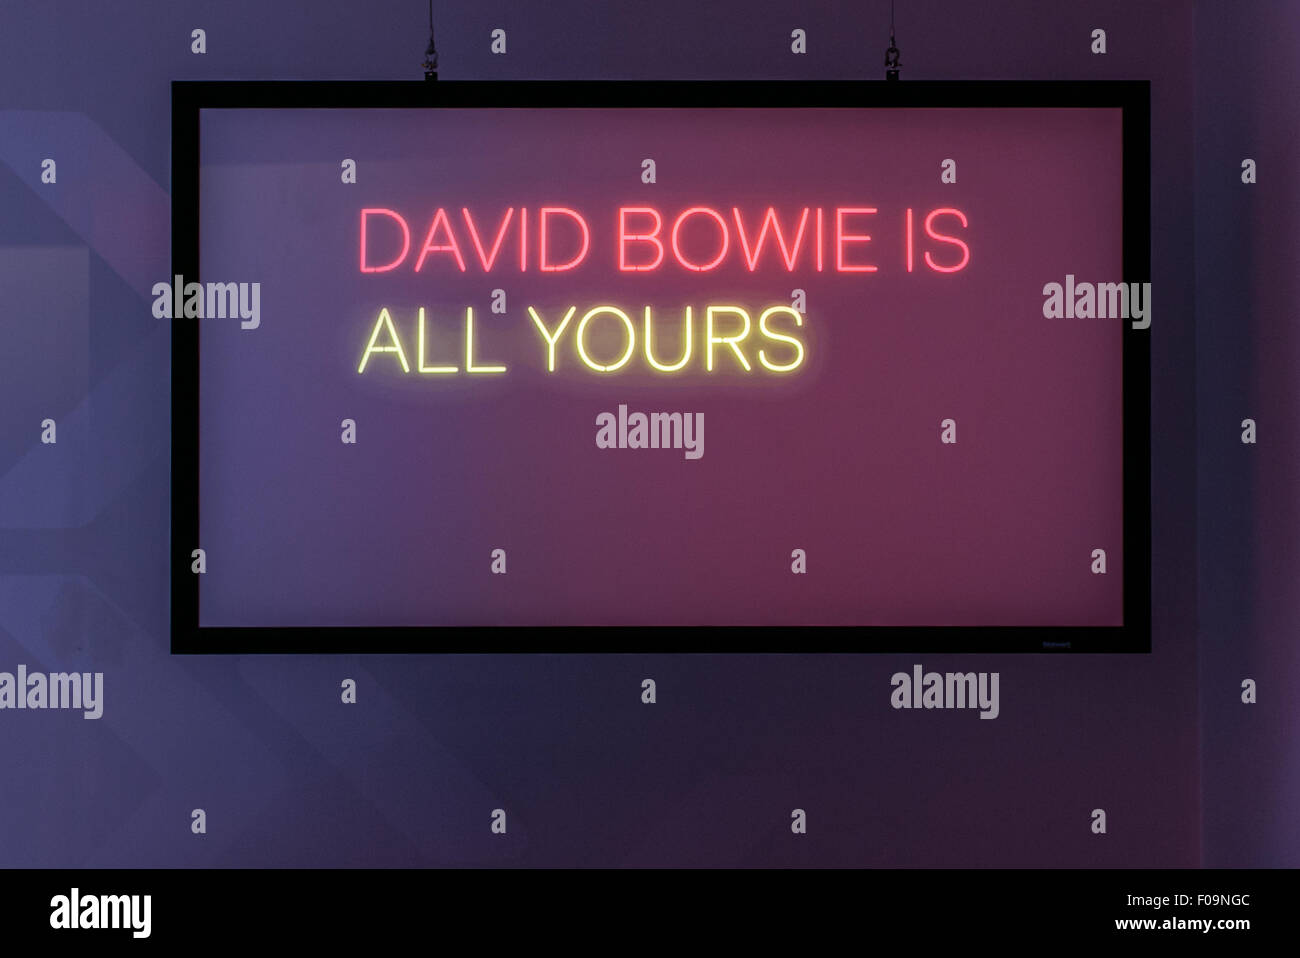 V&A David Bowie Is exhibition at ACMI, Melbourne, Australia - Stock Image